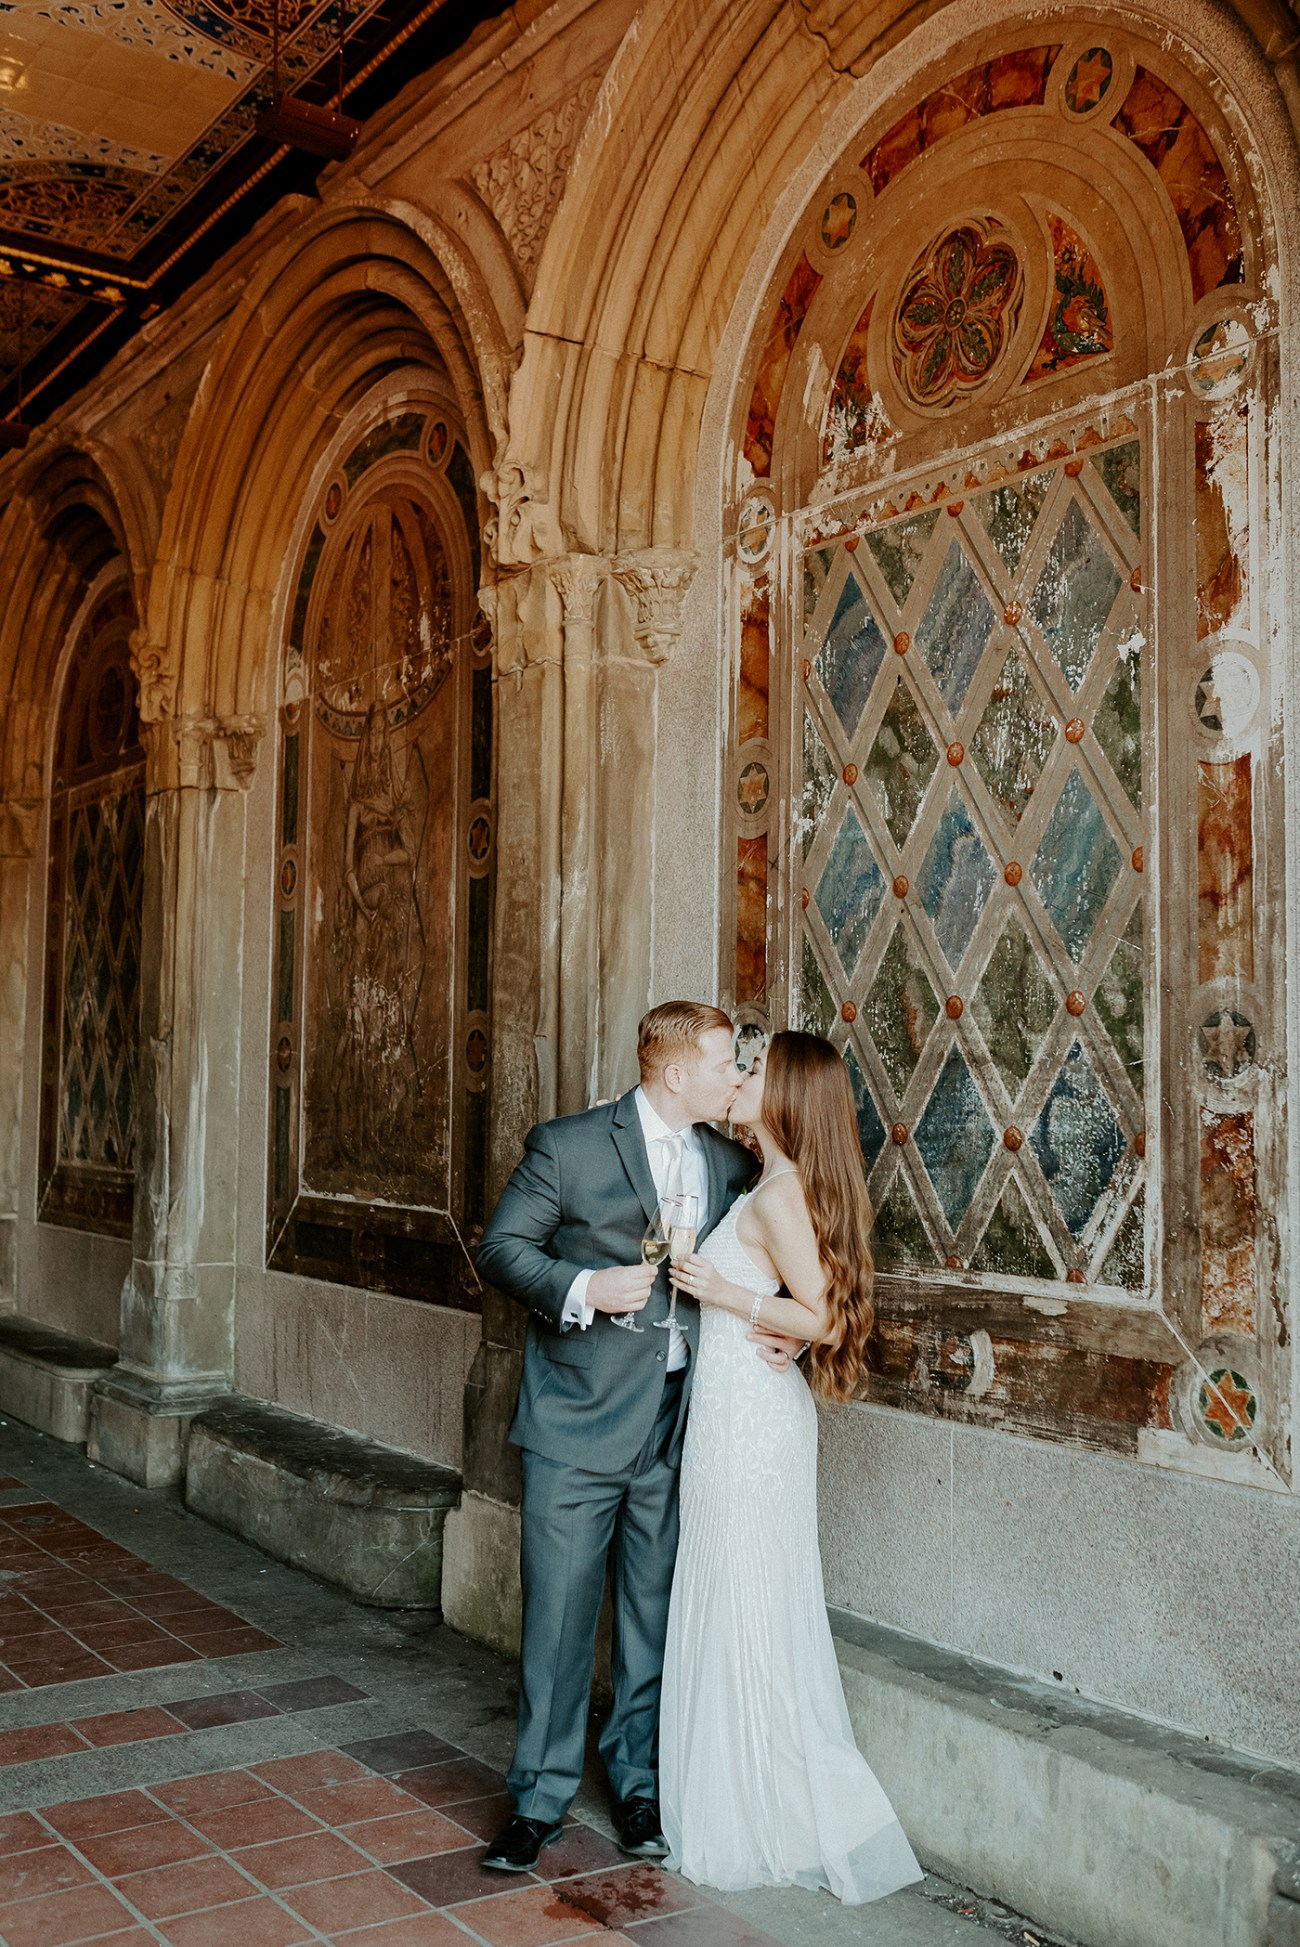 Central Park Elopement Bethesda Fountain Wedding New York Wedding Photographer 51